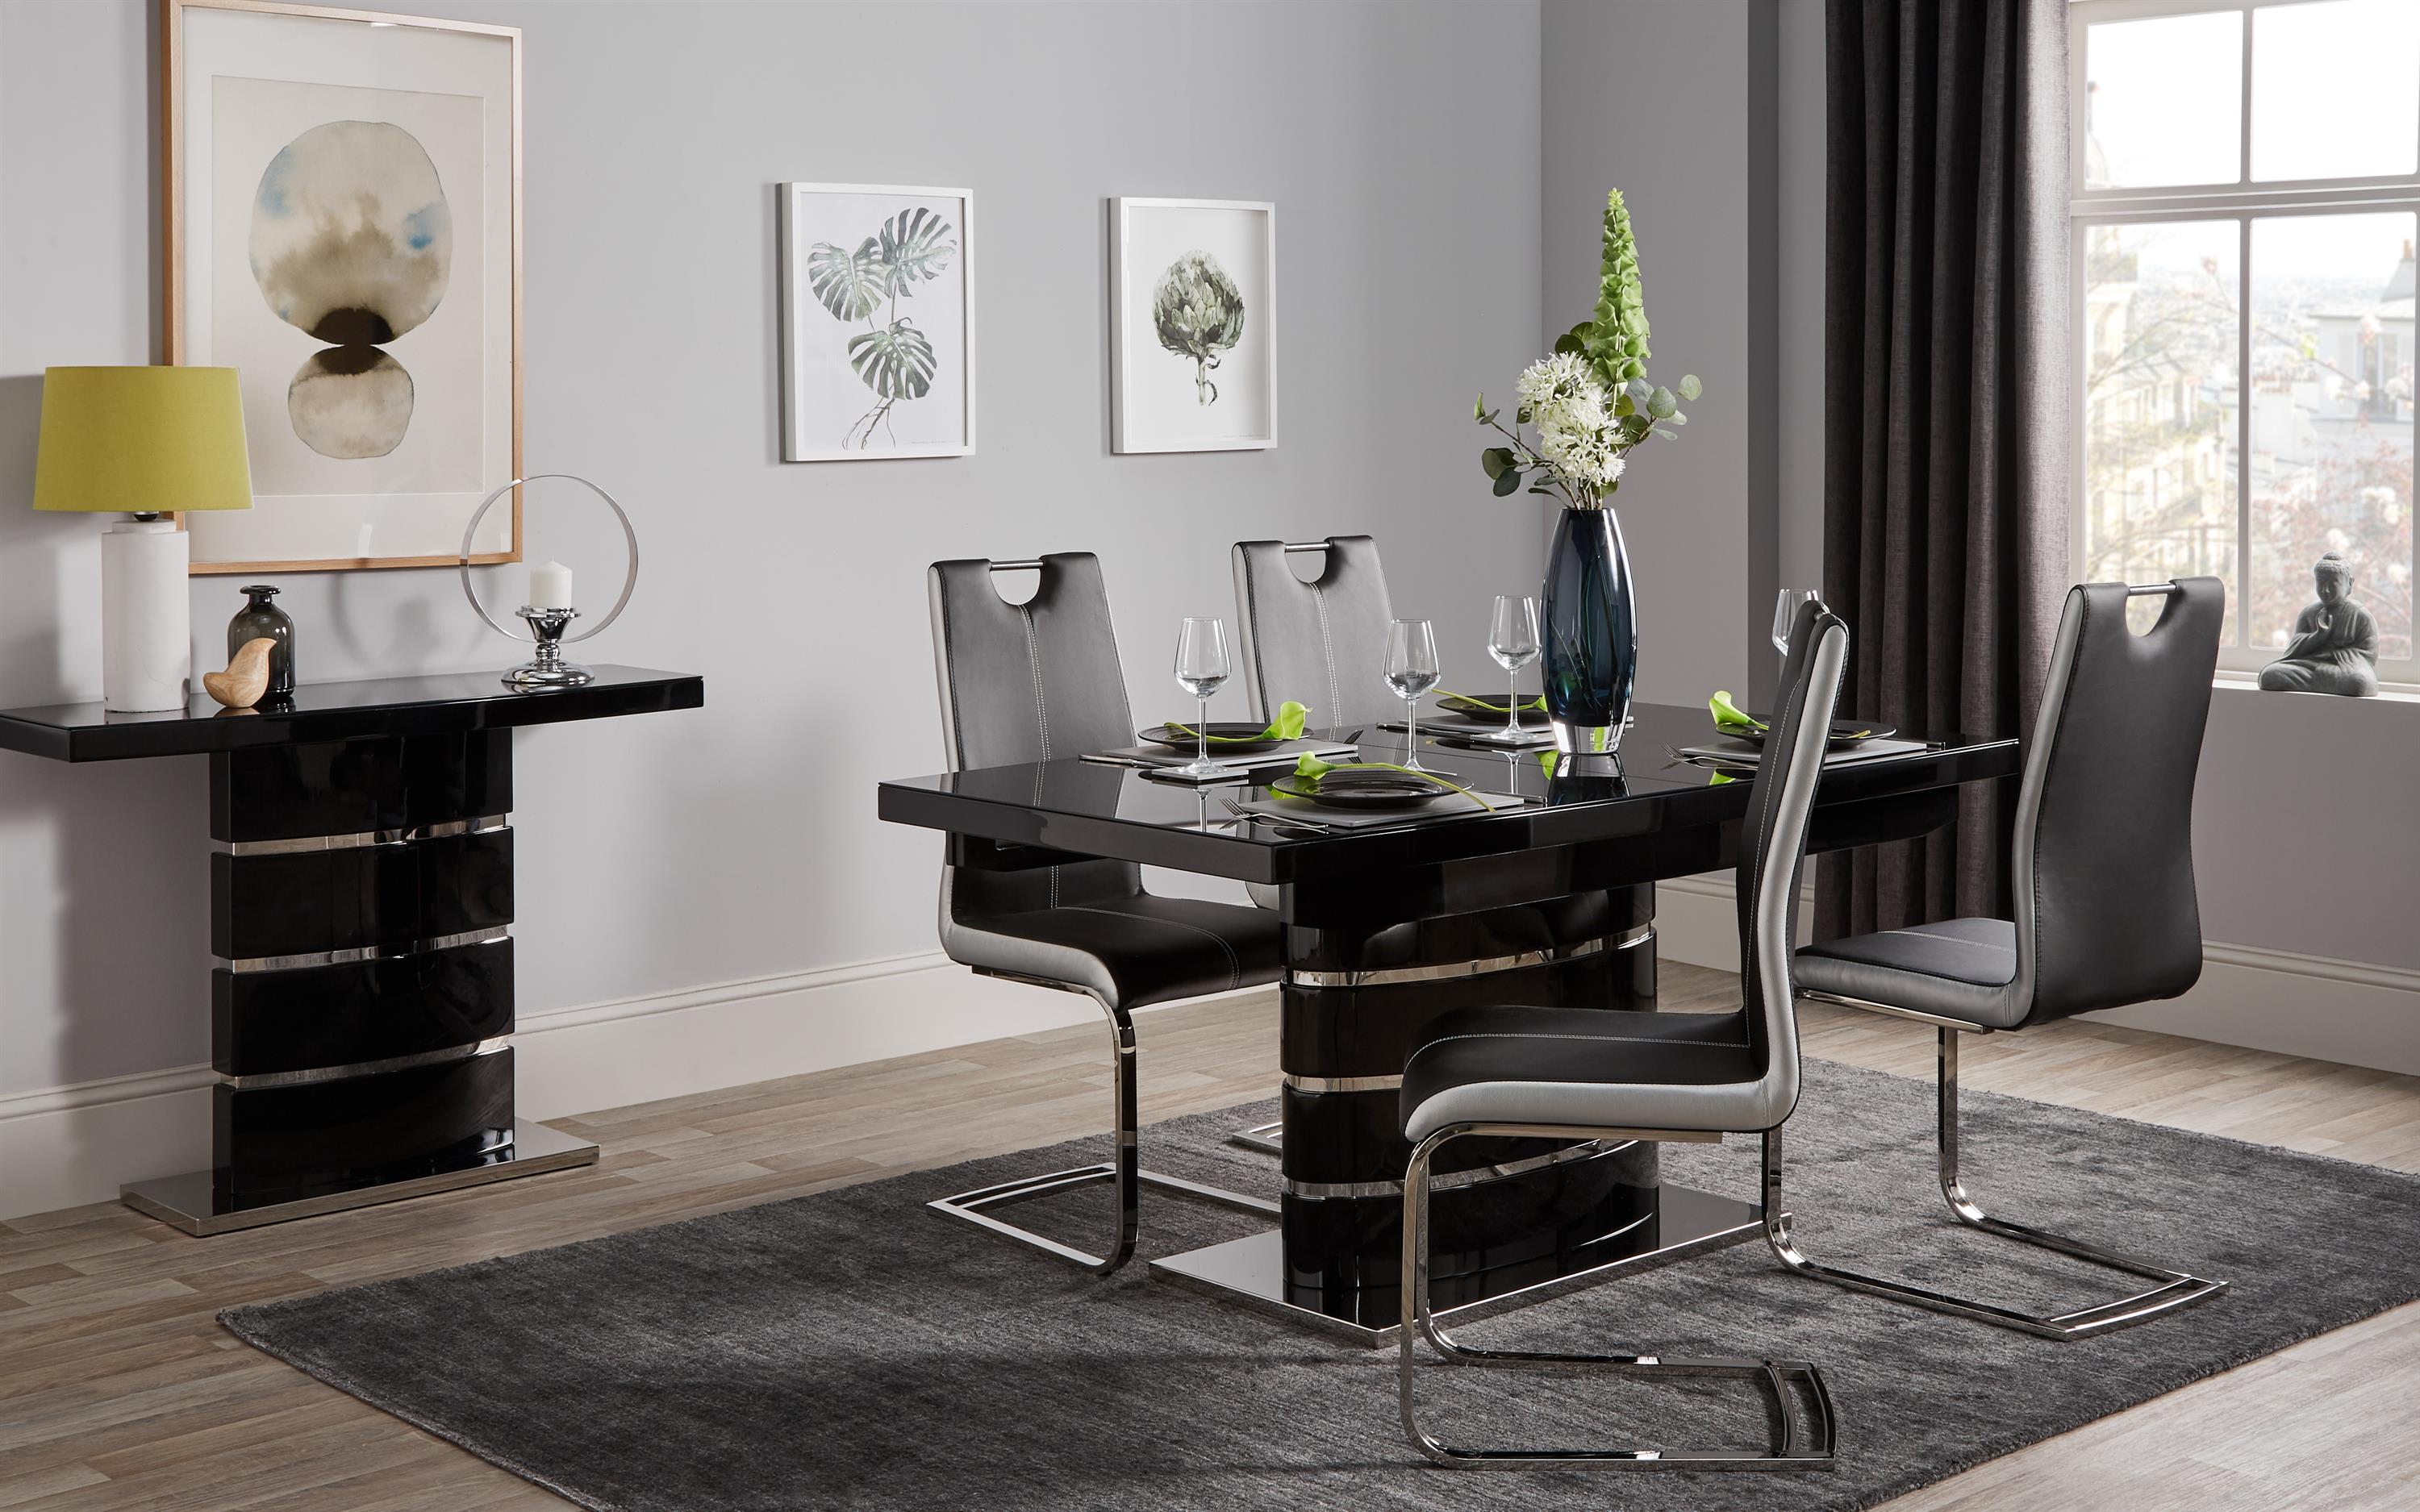 Rimini Black Dining Table & 6 Chairs, , large